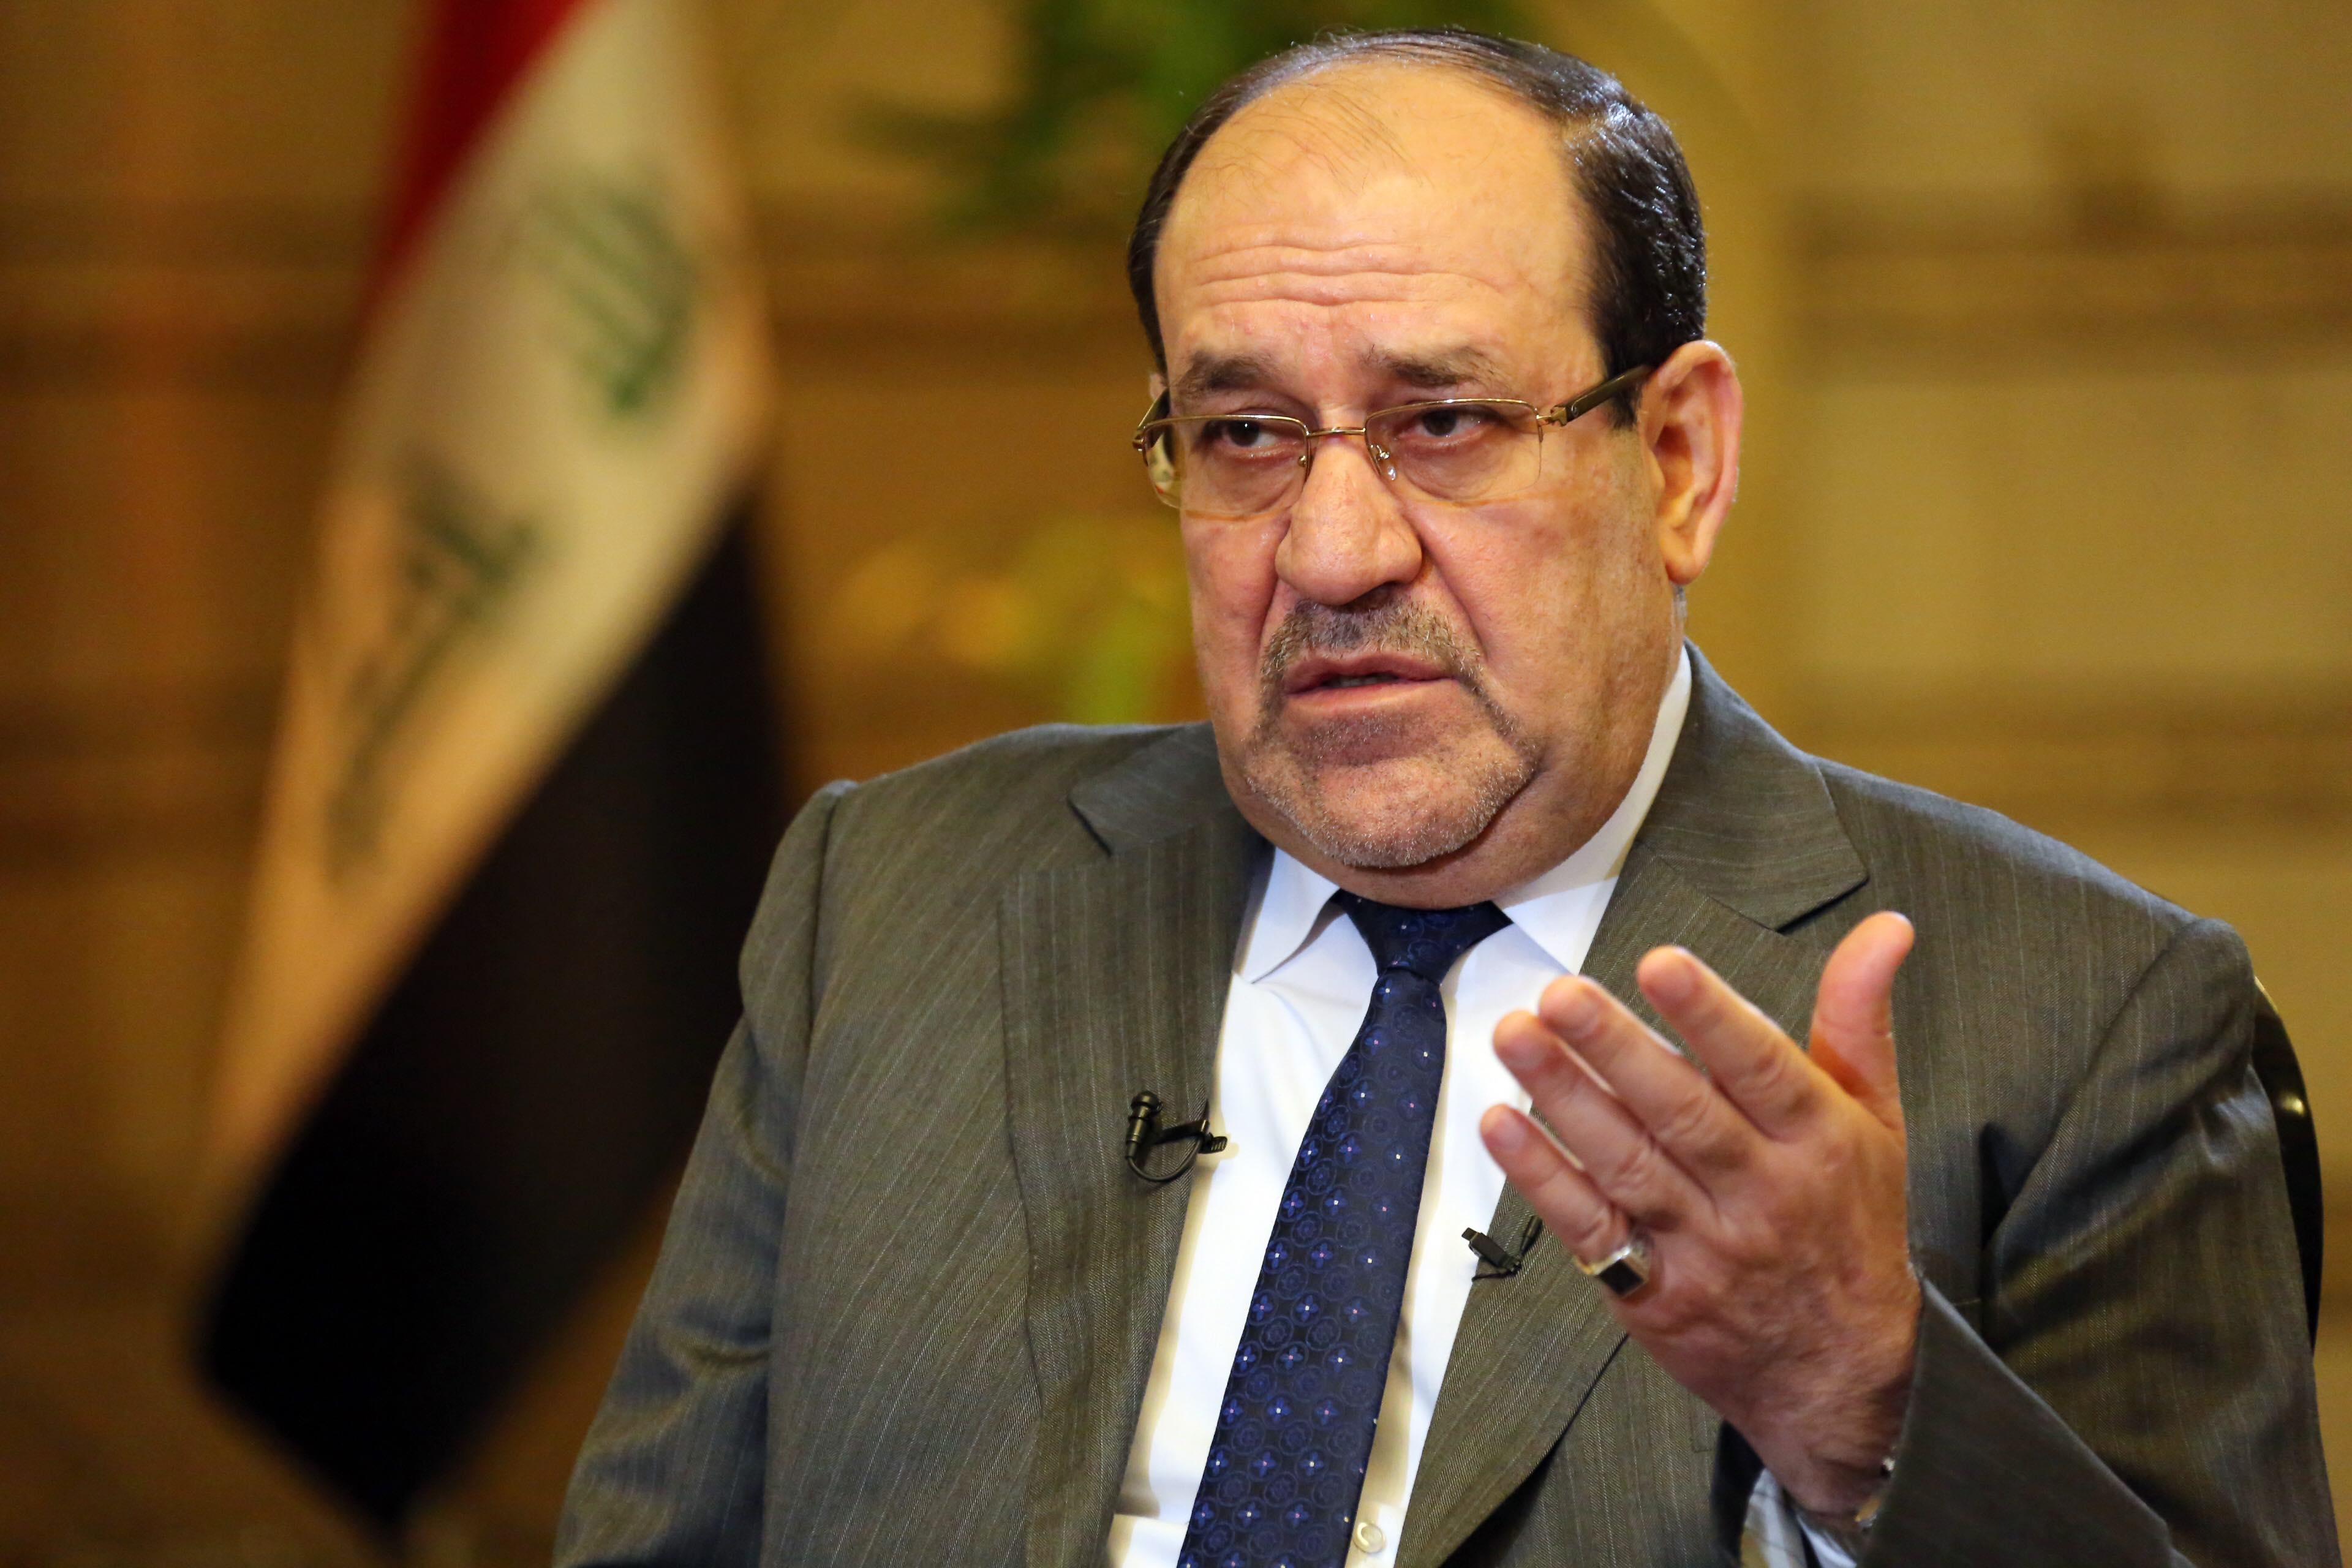 State of law reveals the person who delivered the American message to Al-Maliki